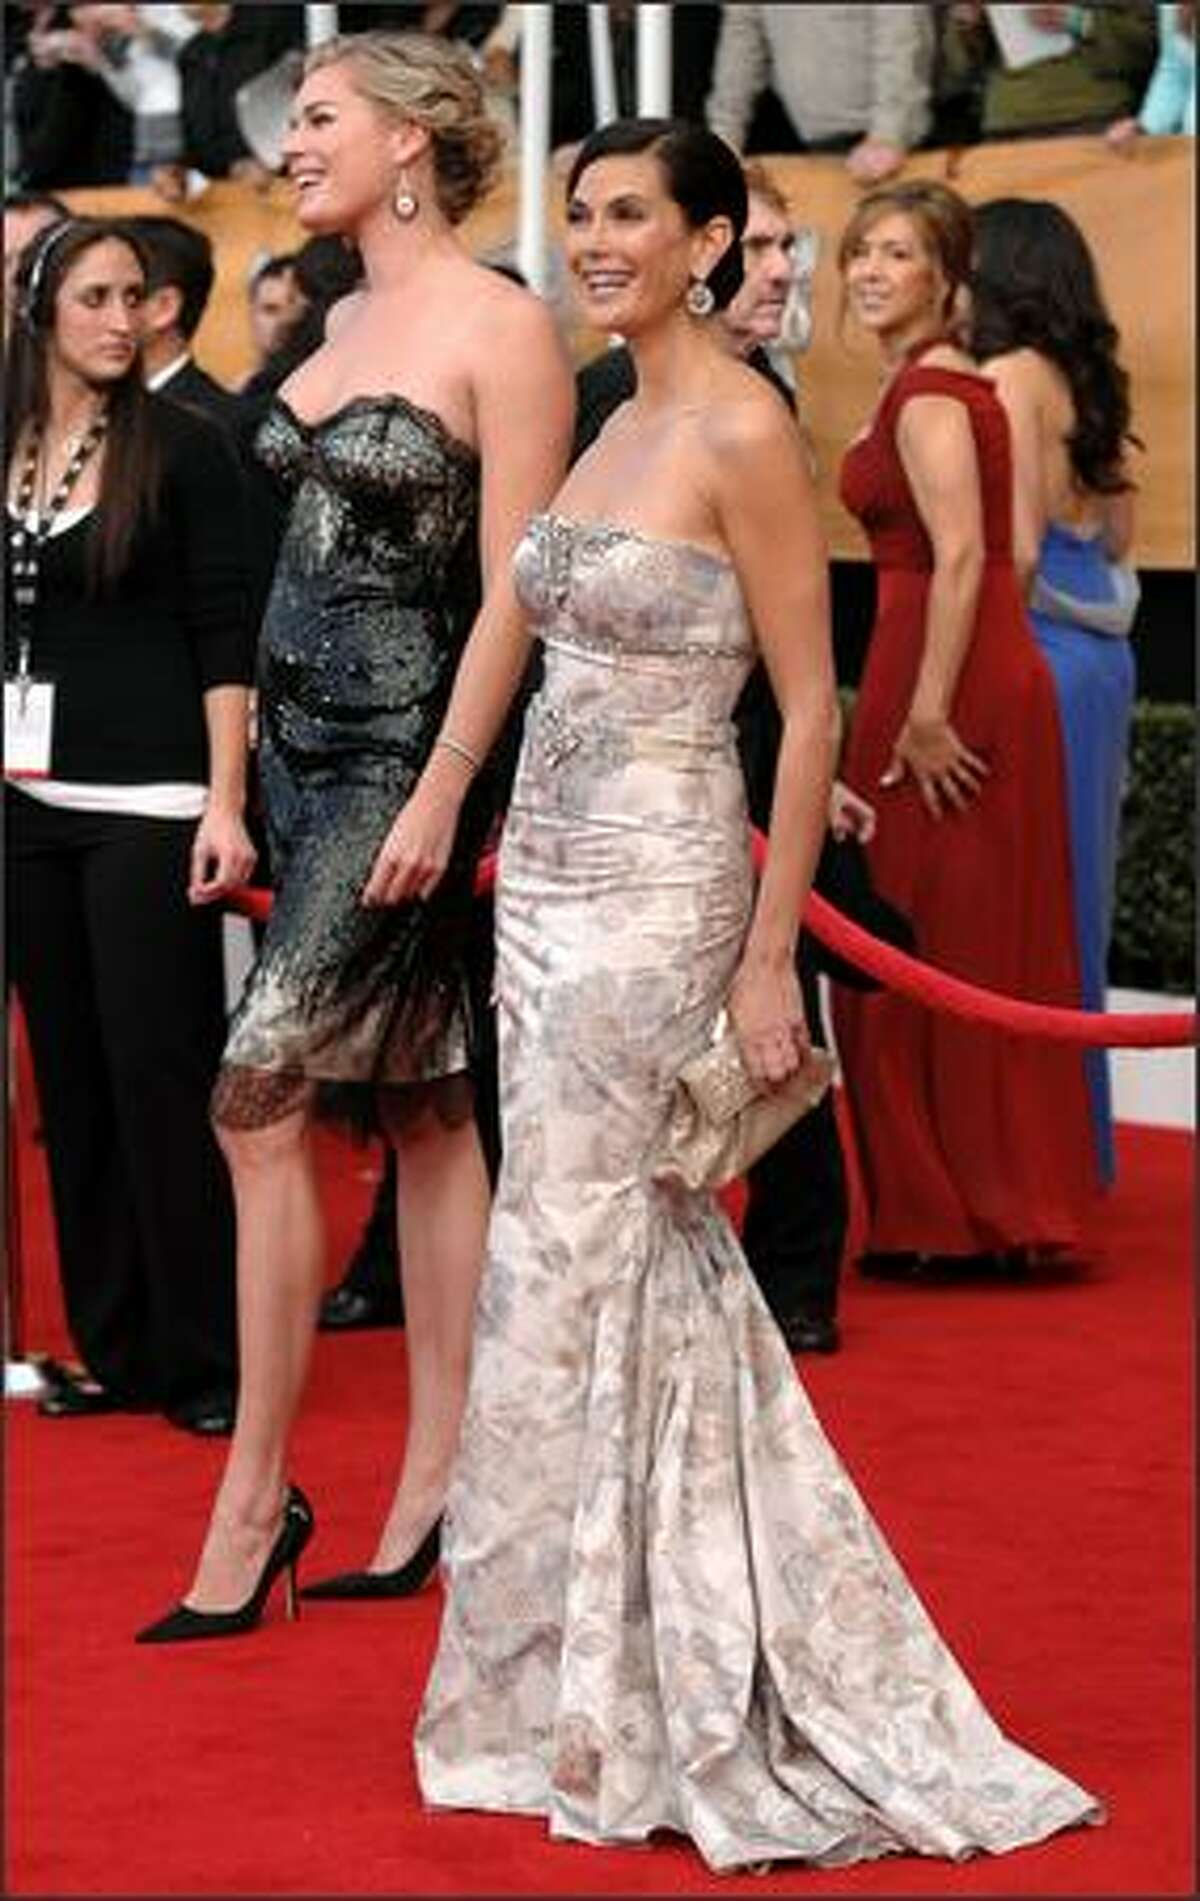 Teri Hatcher, right, and Rebecca Romijn arrive at the 14th Annual Screen Actors Guild Awards on Sunday.